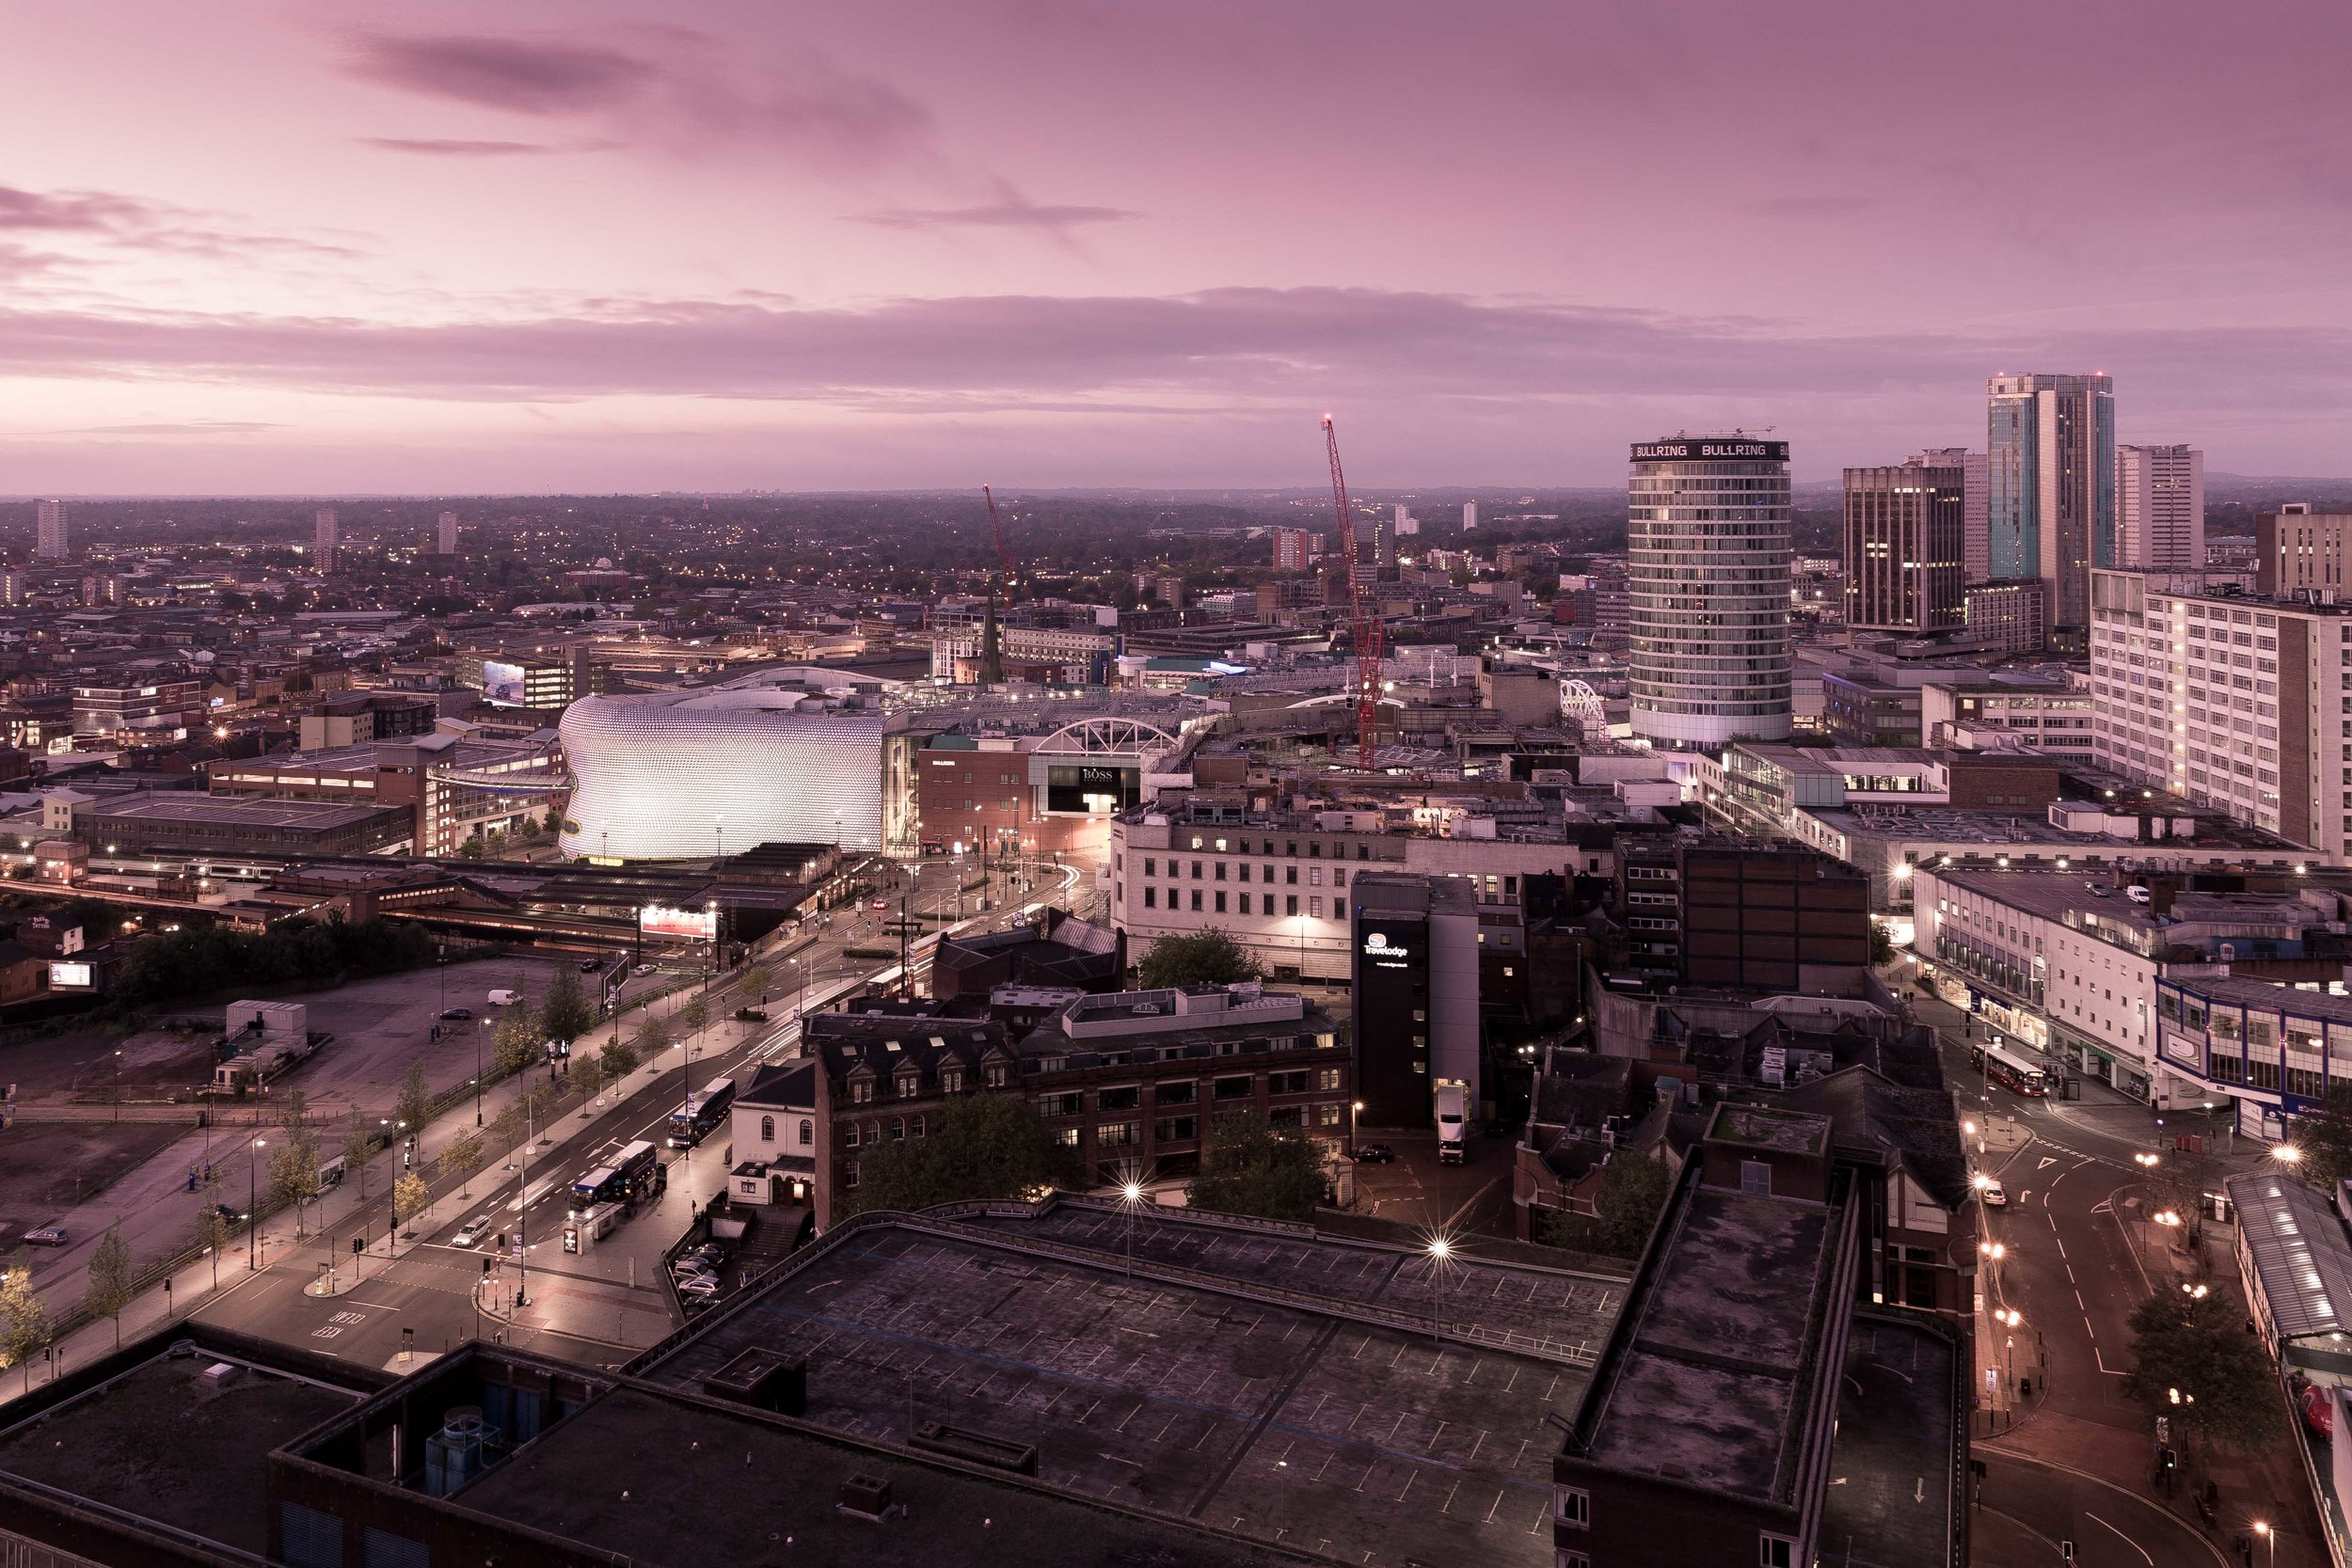 October: Brumrise from the roof of the 27-storey McLaren building.